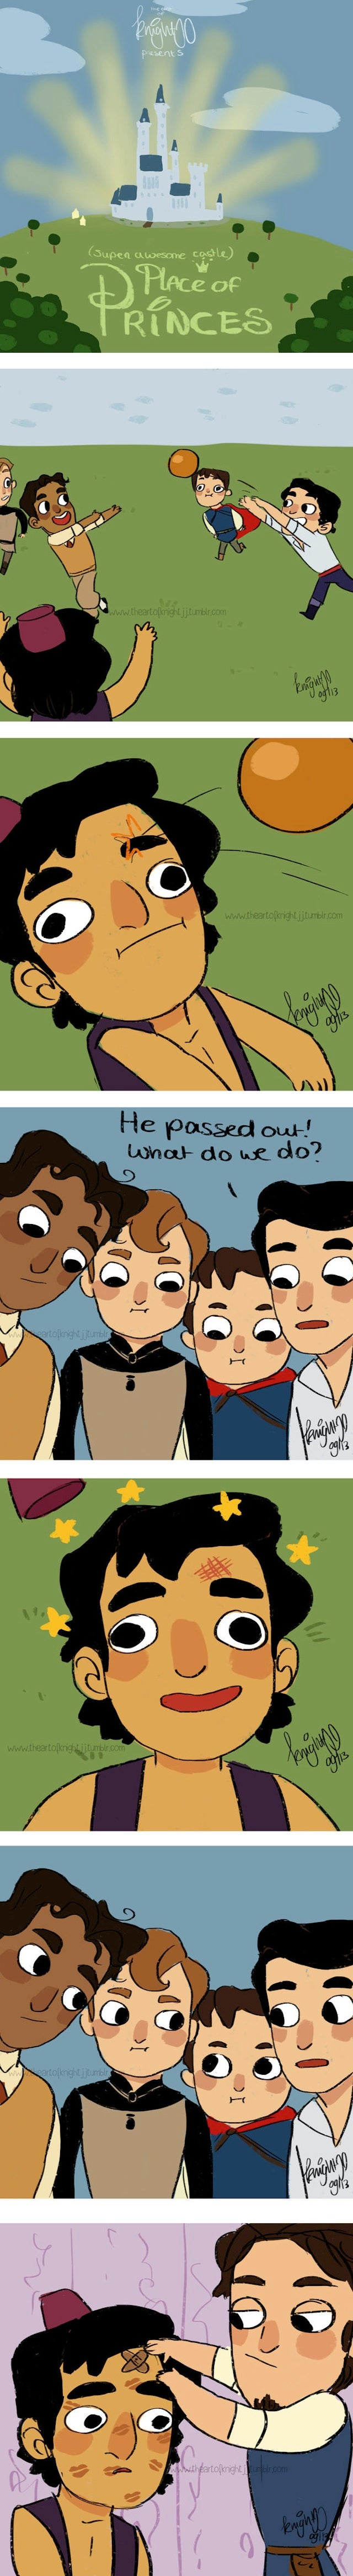 What if all the Disney princes lived together in one castle?